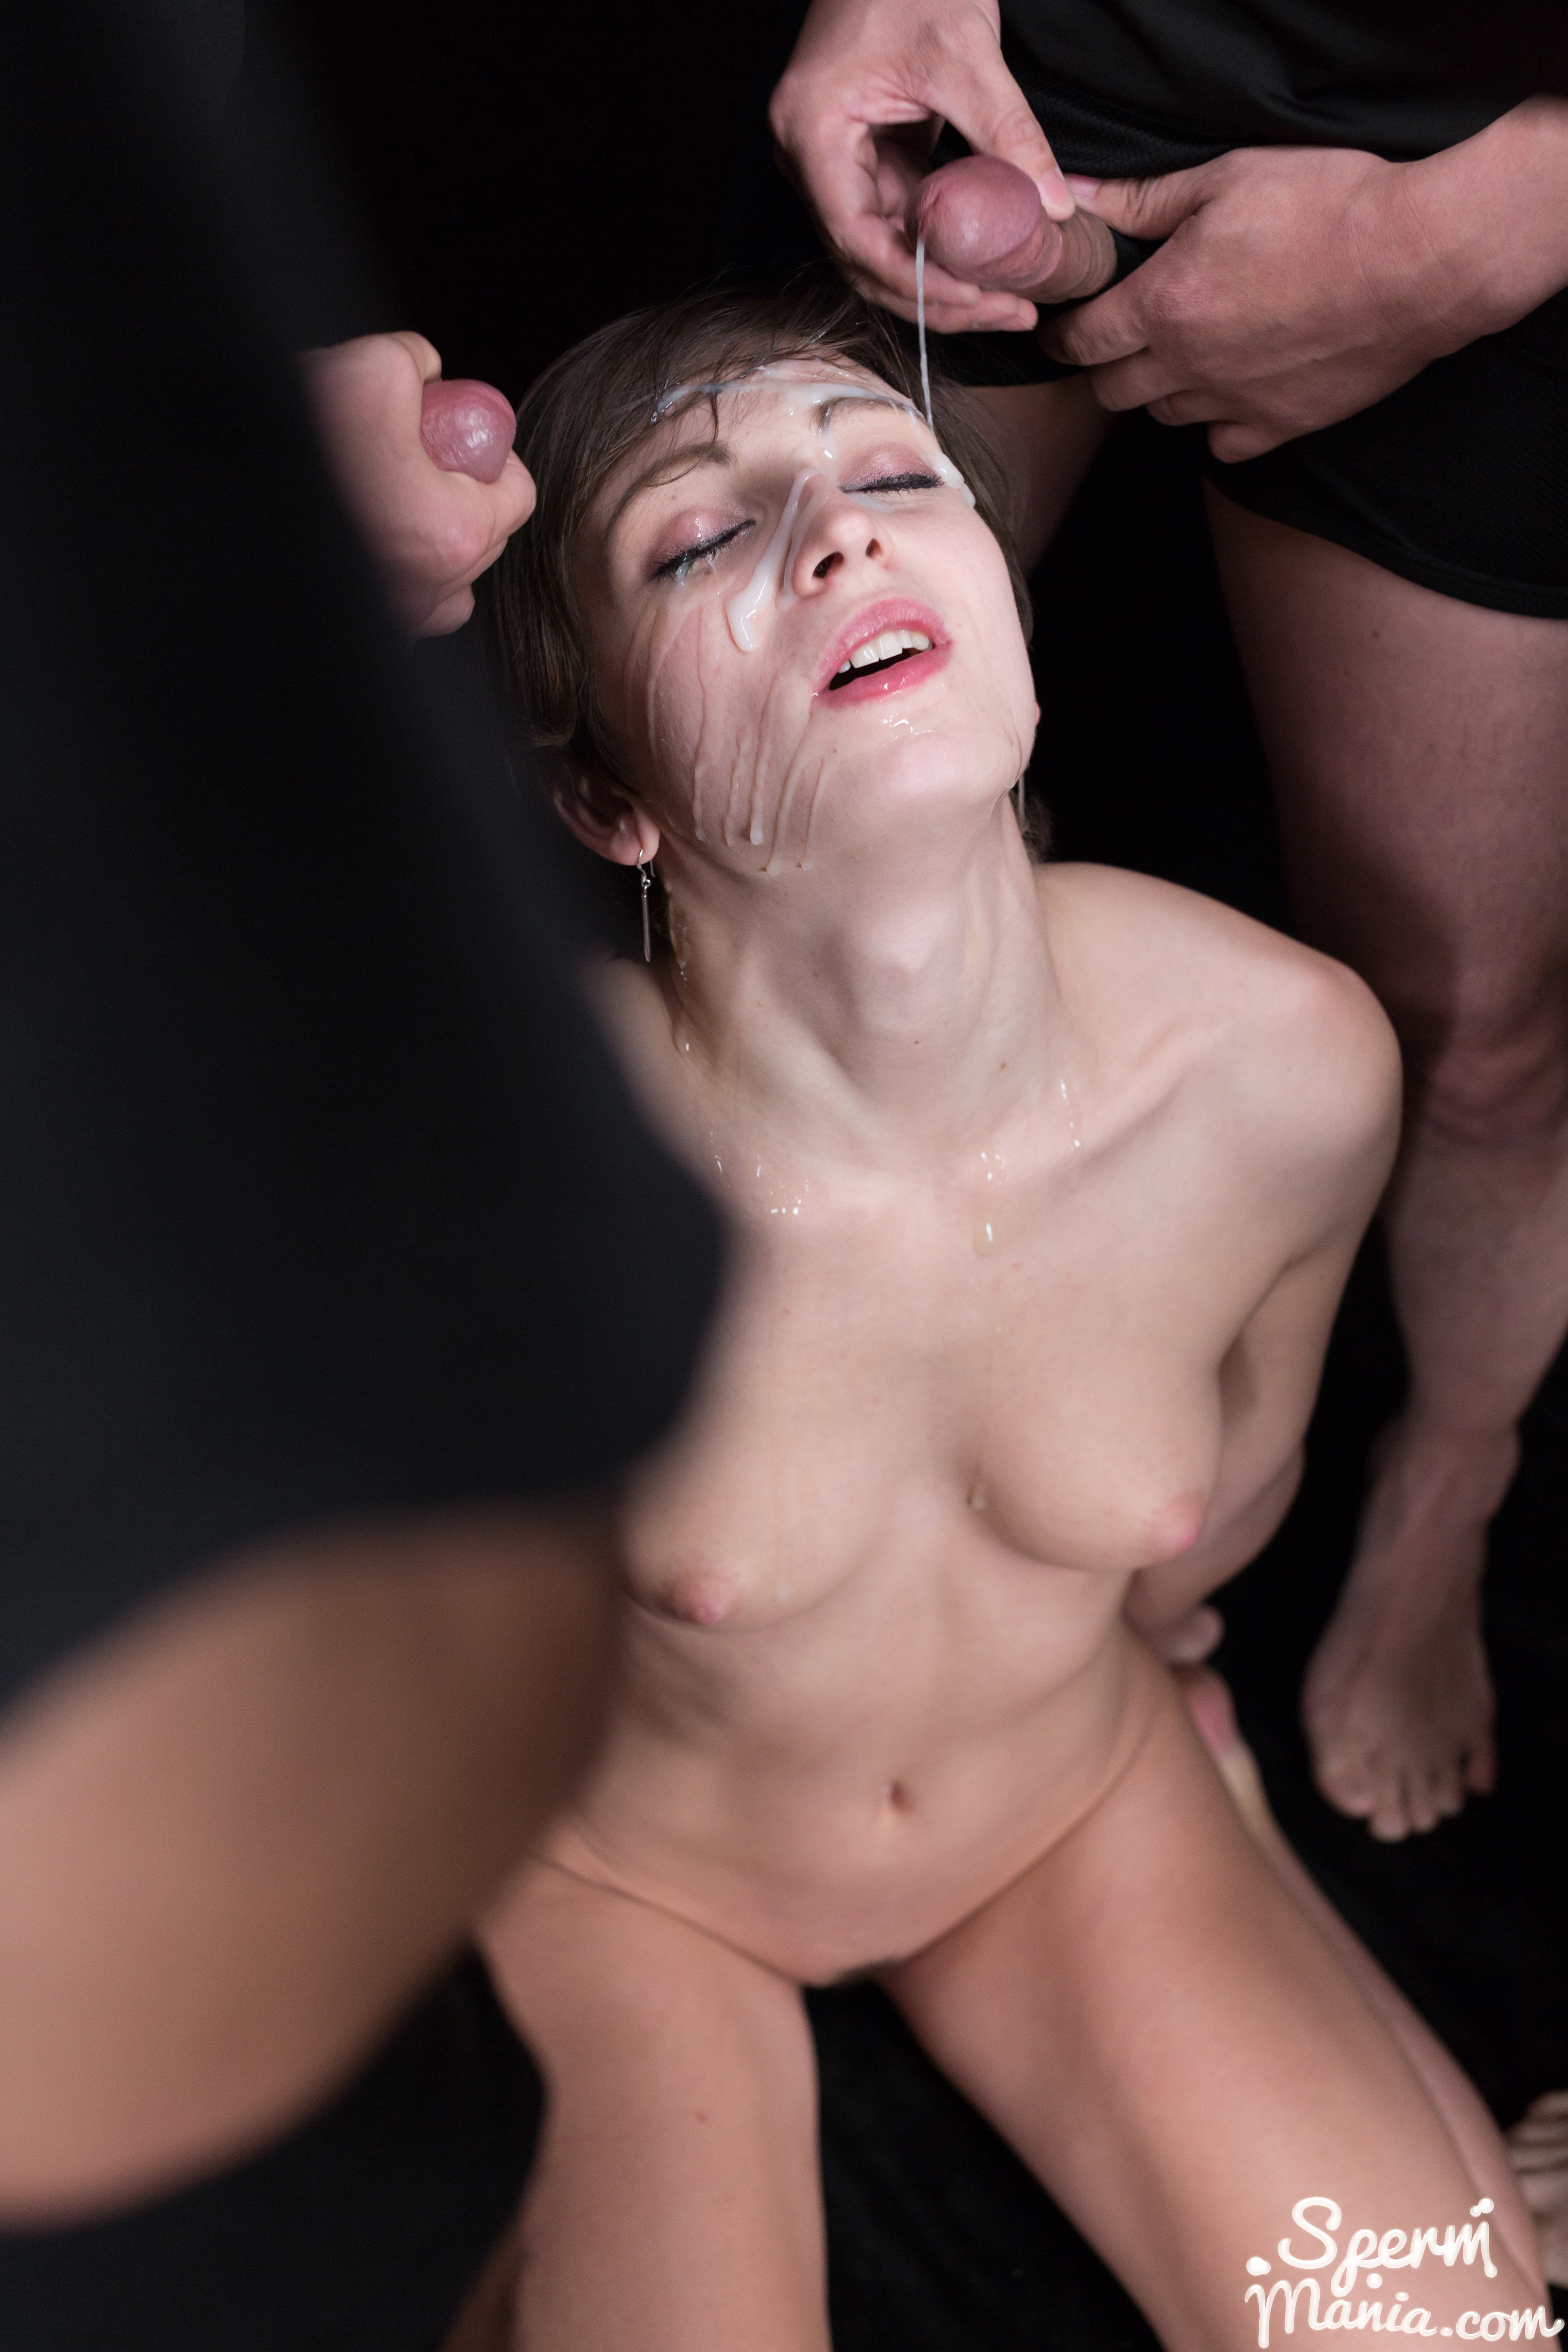 Shaved pussy lovers